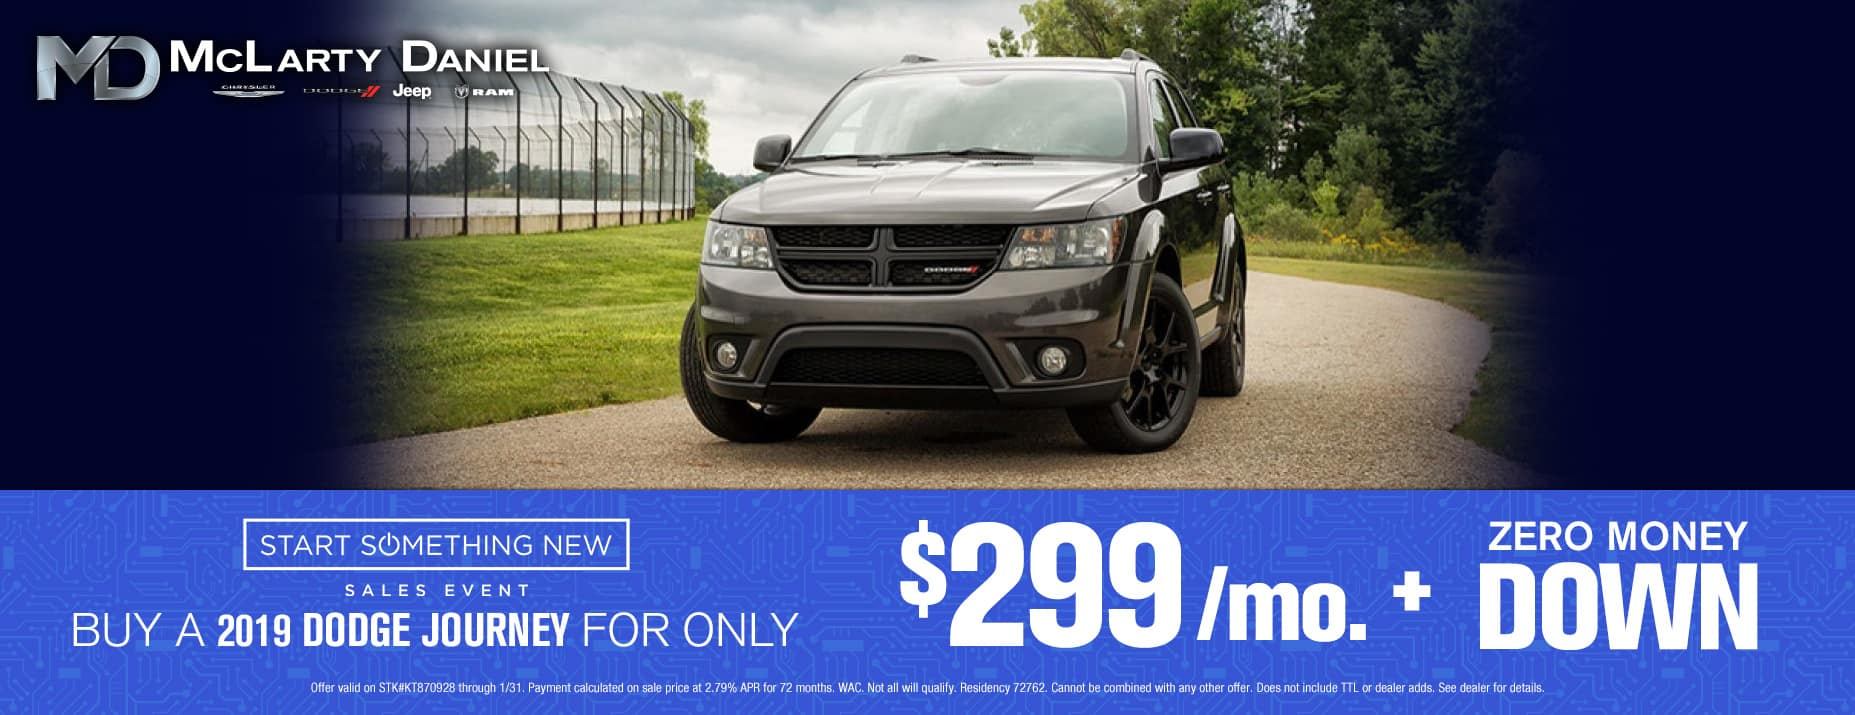 Buy a 2019 Dodge Journey for only $299/mo with no money down!